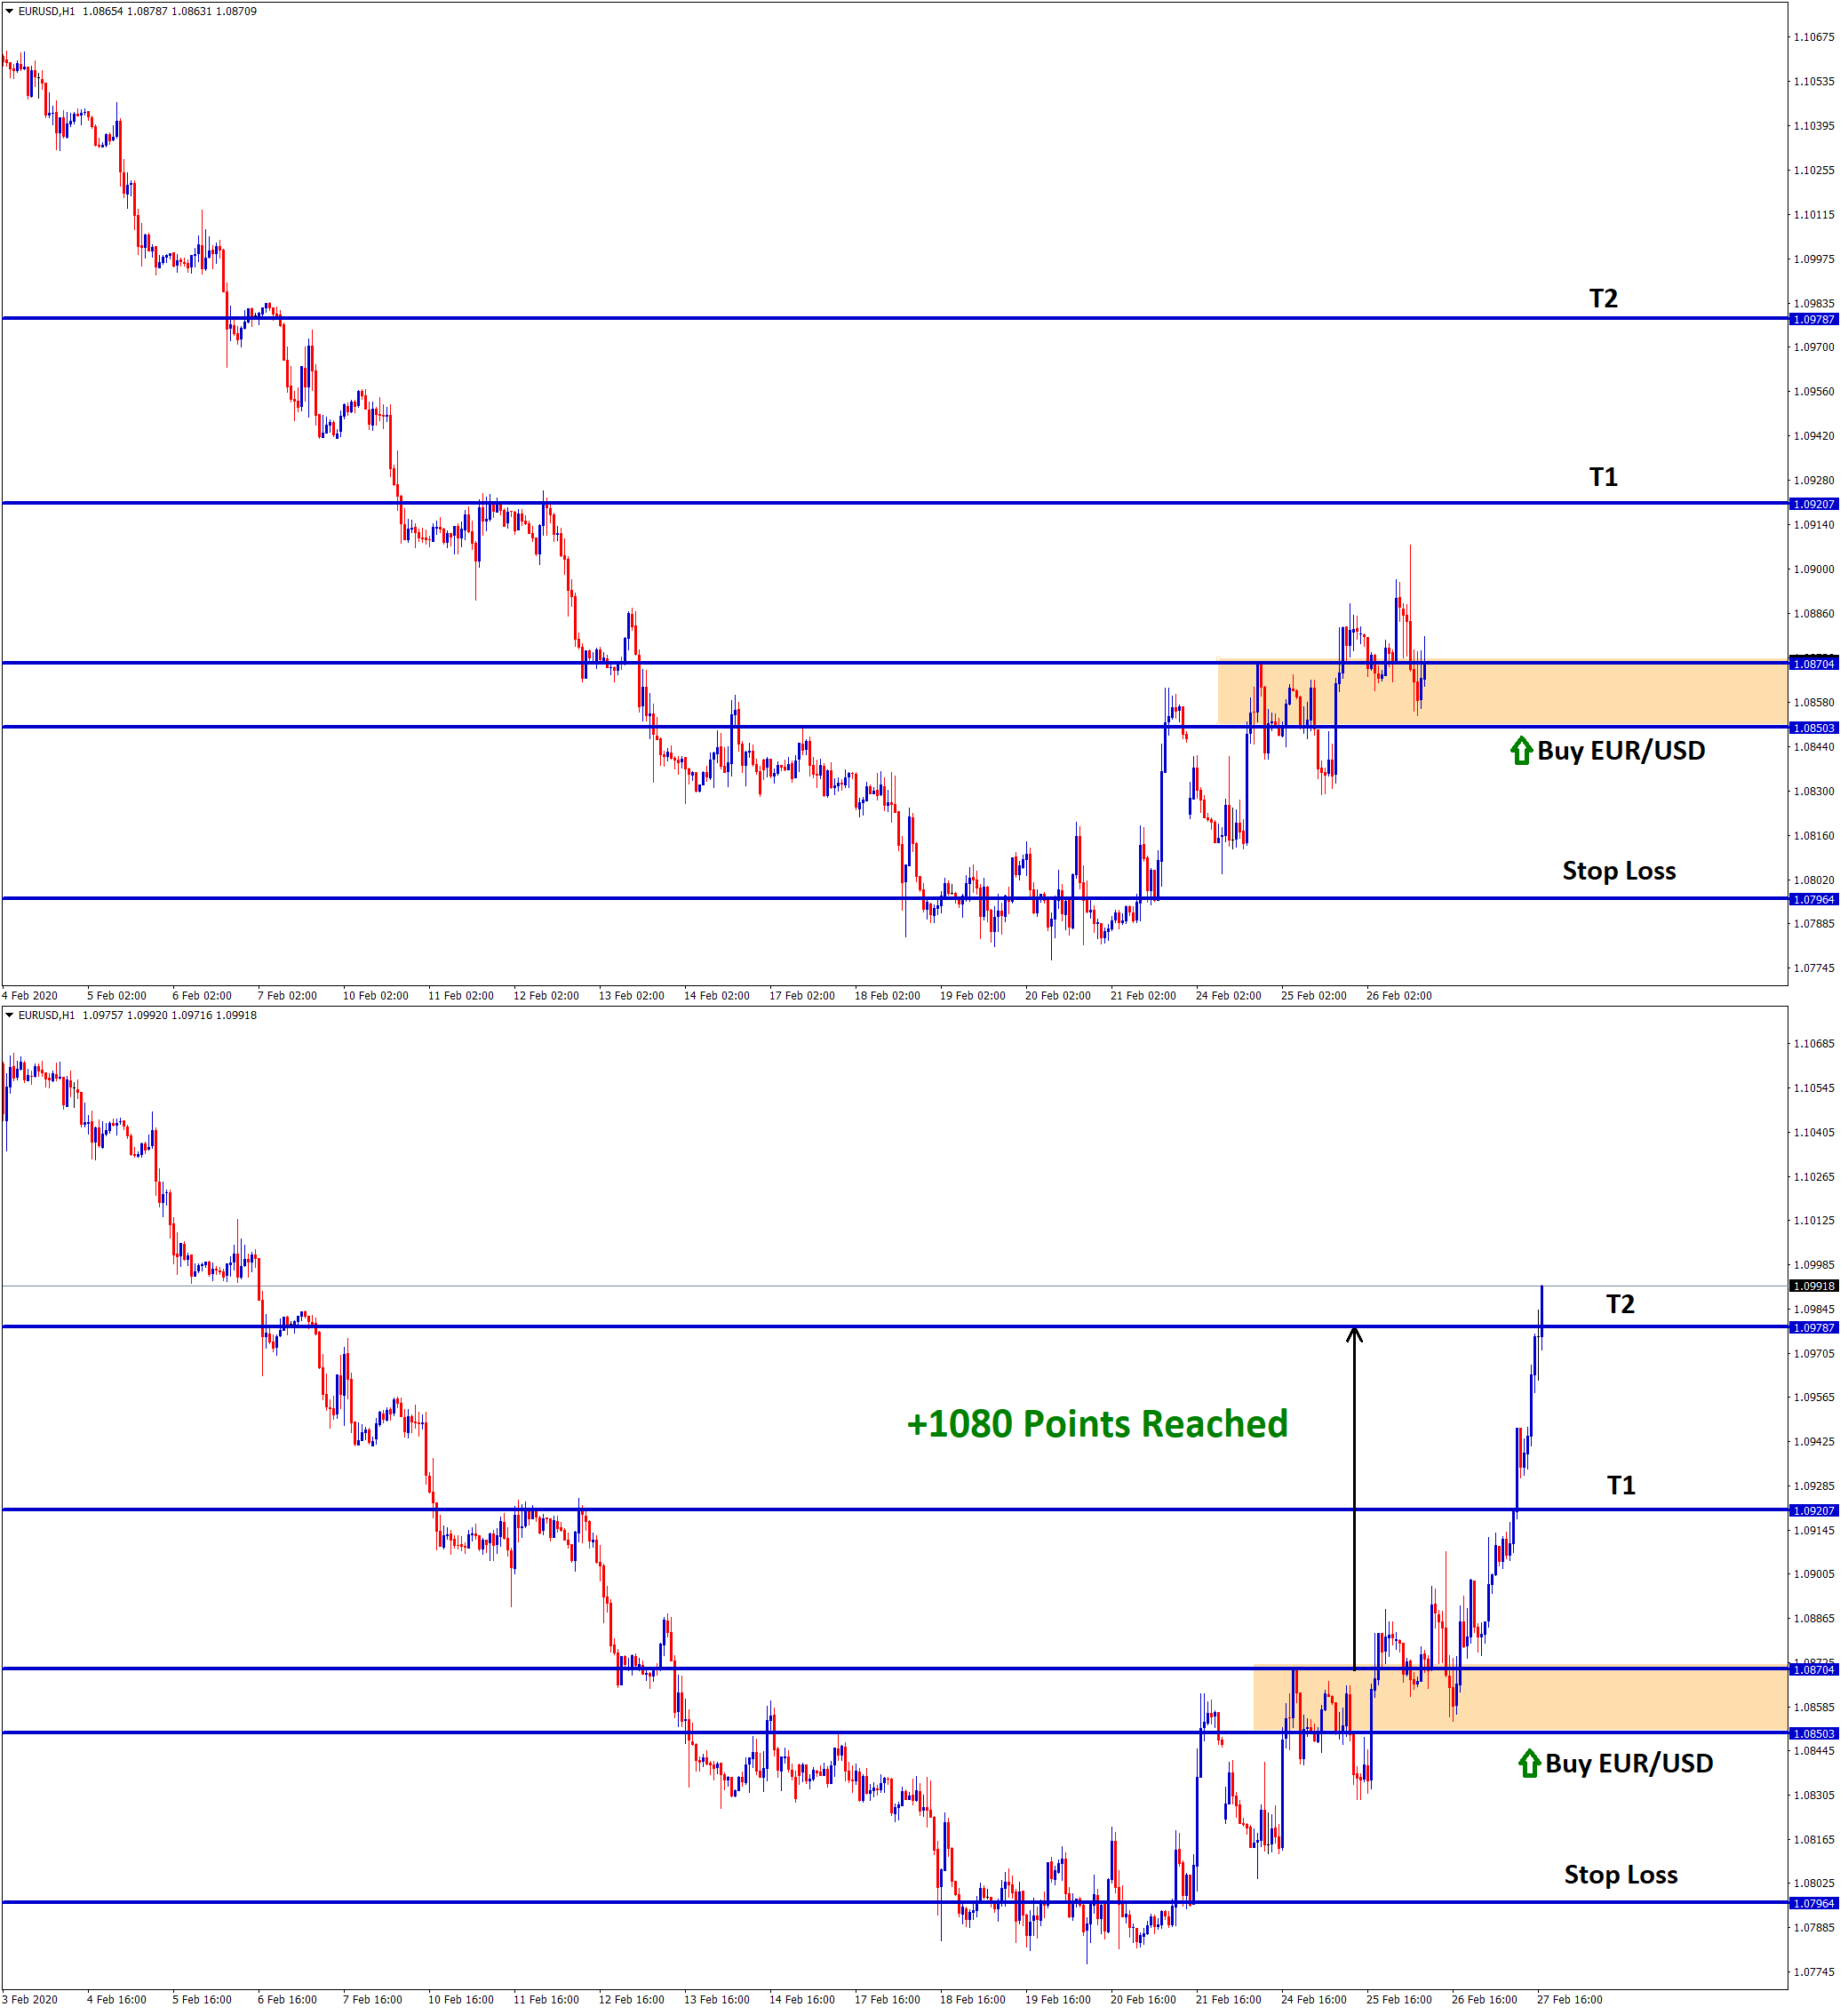 eur usd buy trade achieved 108 pips profit